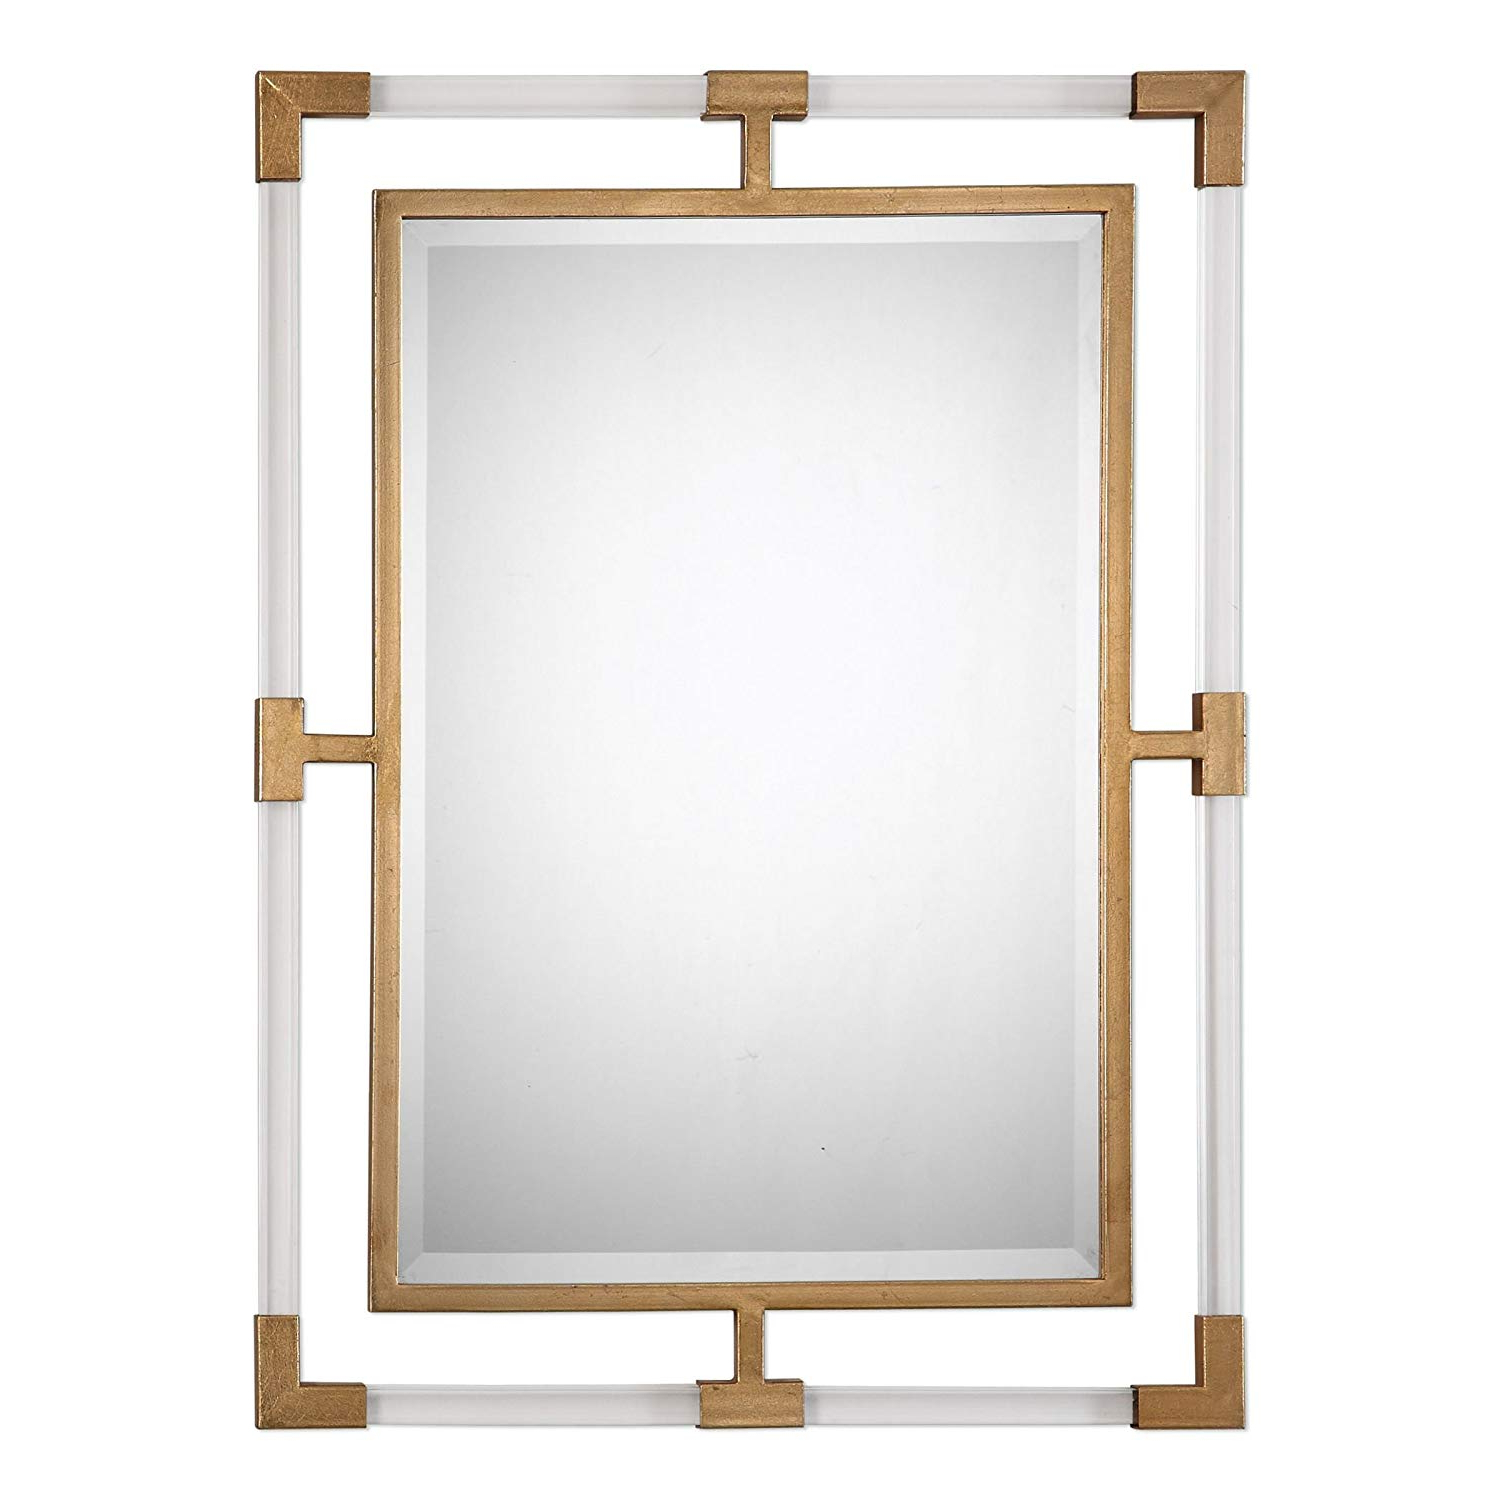 Contemporary Regarding Acrylic Wall Mirrors (Gallery 1 of 20)